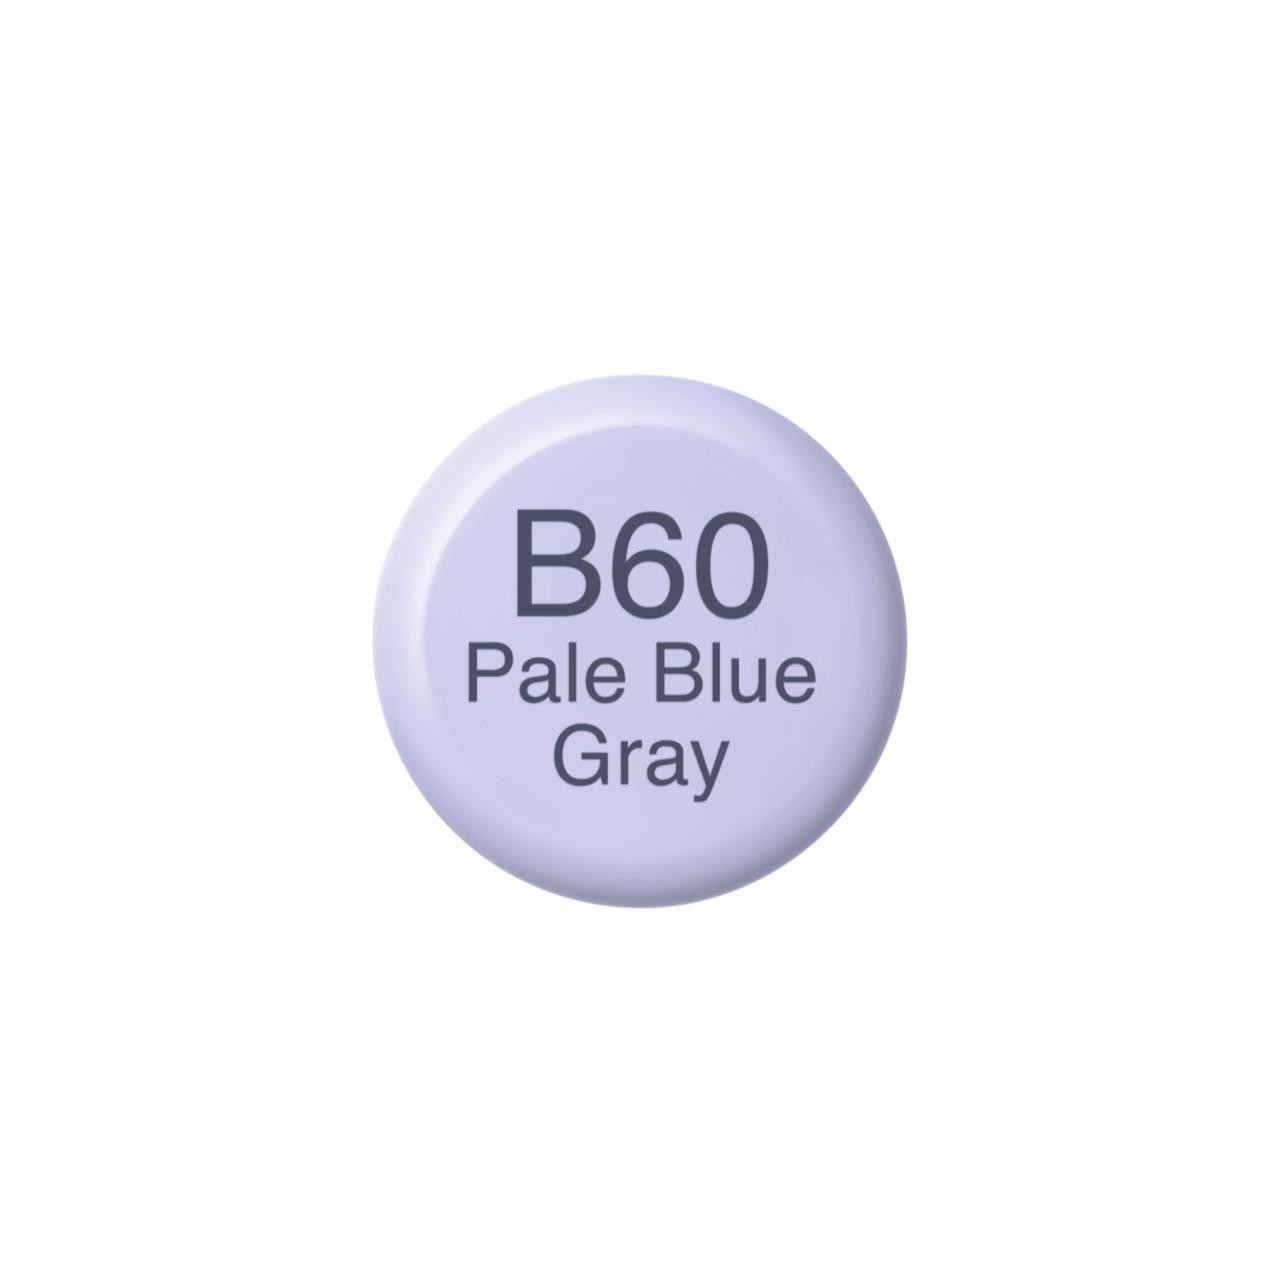 B60 Pale Blue Gray, Copic Ink - 4511338056059